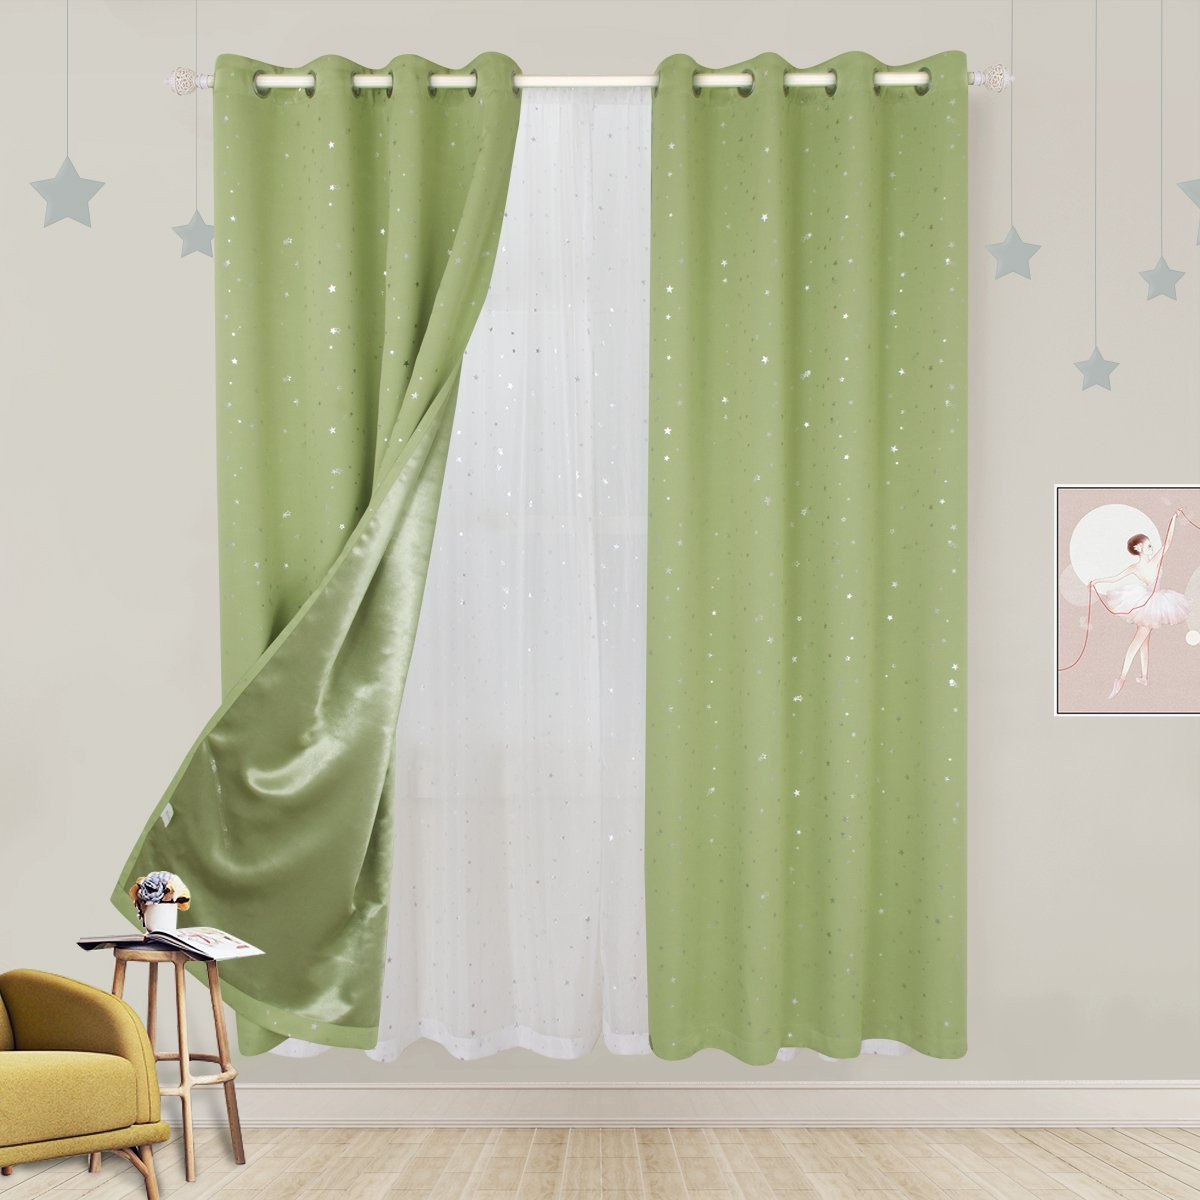 Navy Blue Curtains for Bedroom Best Of Bgment Kids Blackout Curtains for Bedroom Grommet thermal